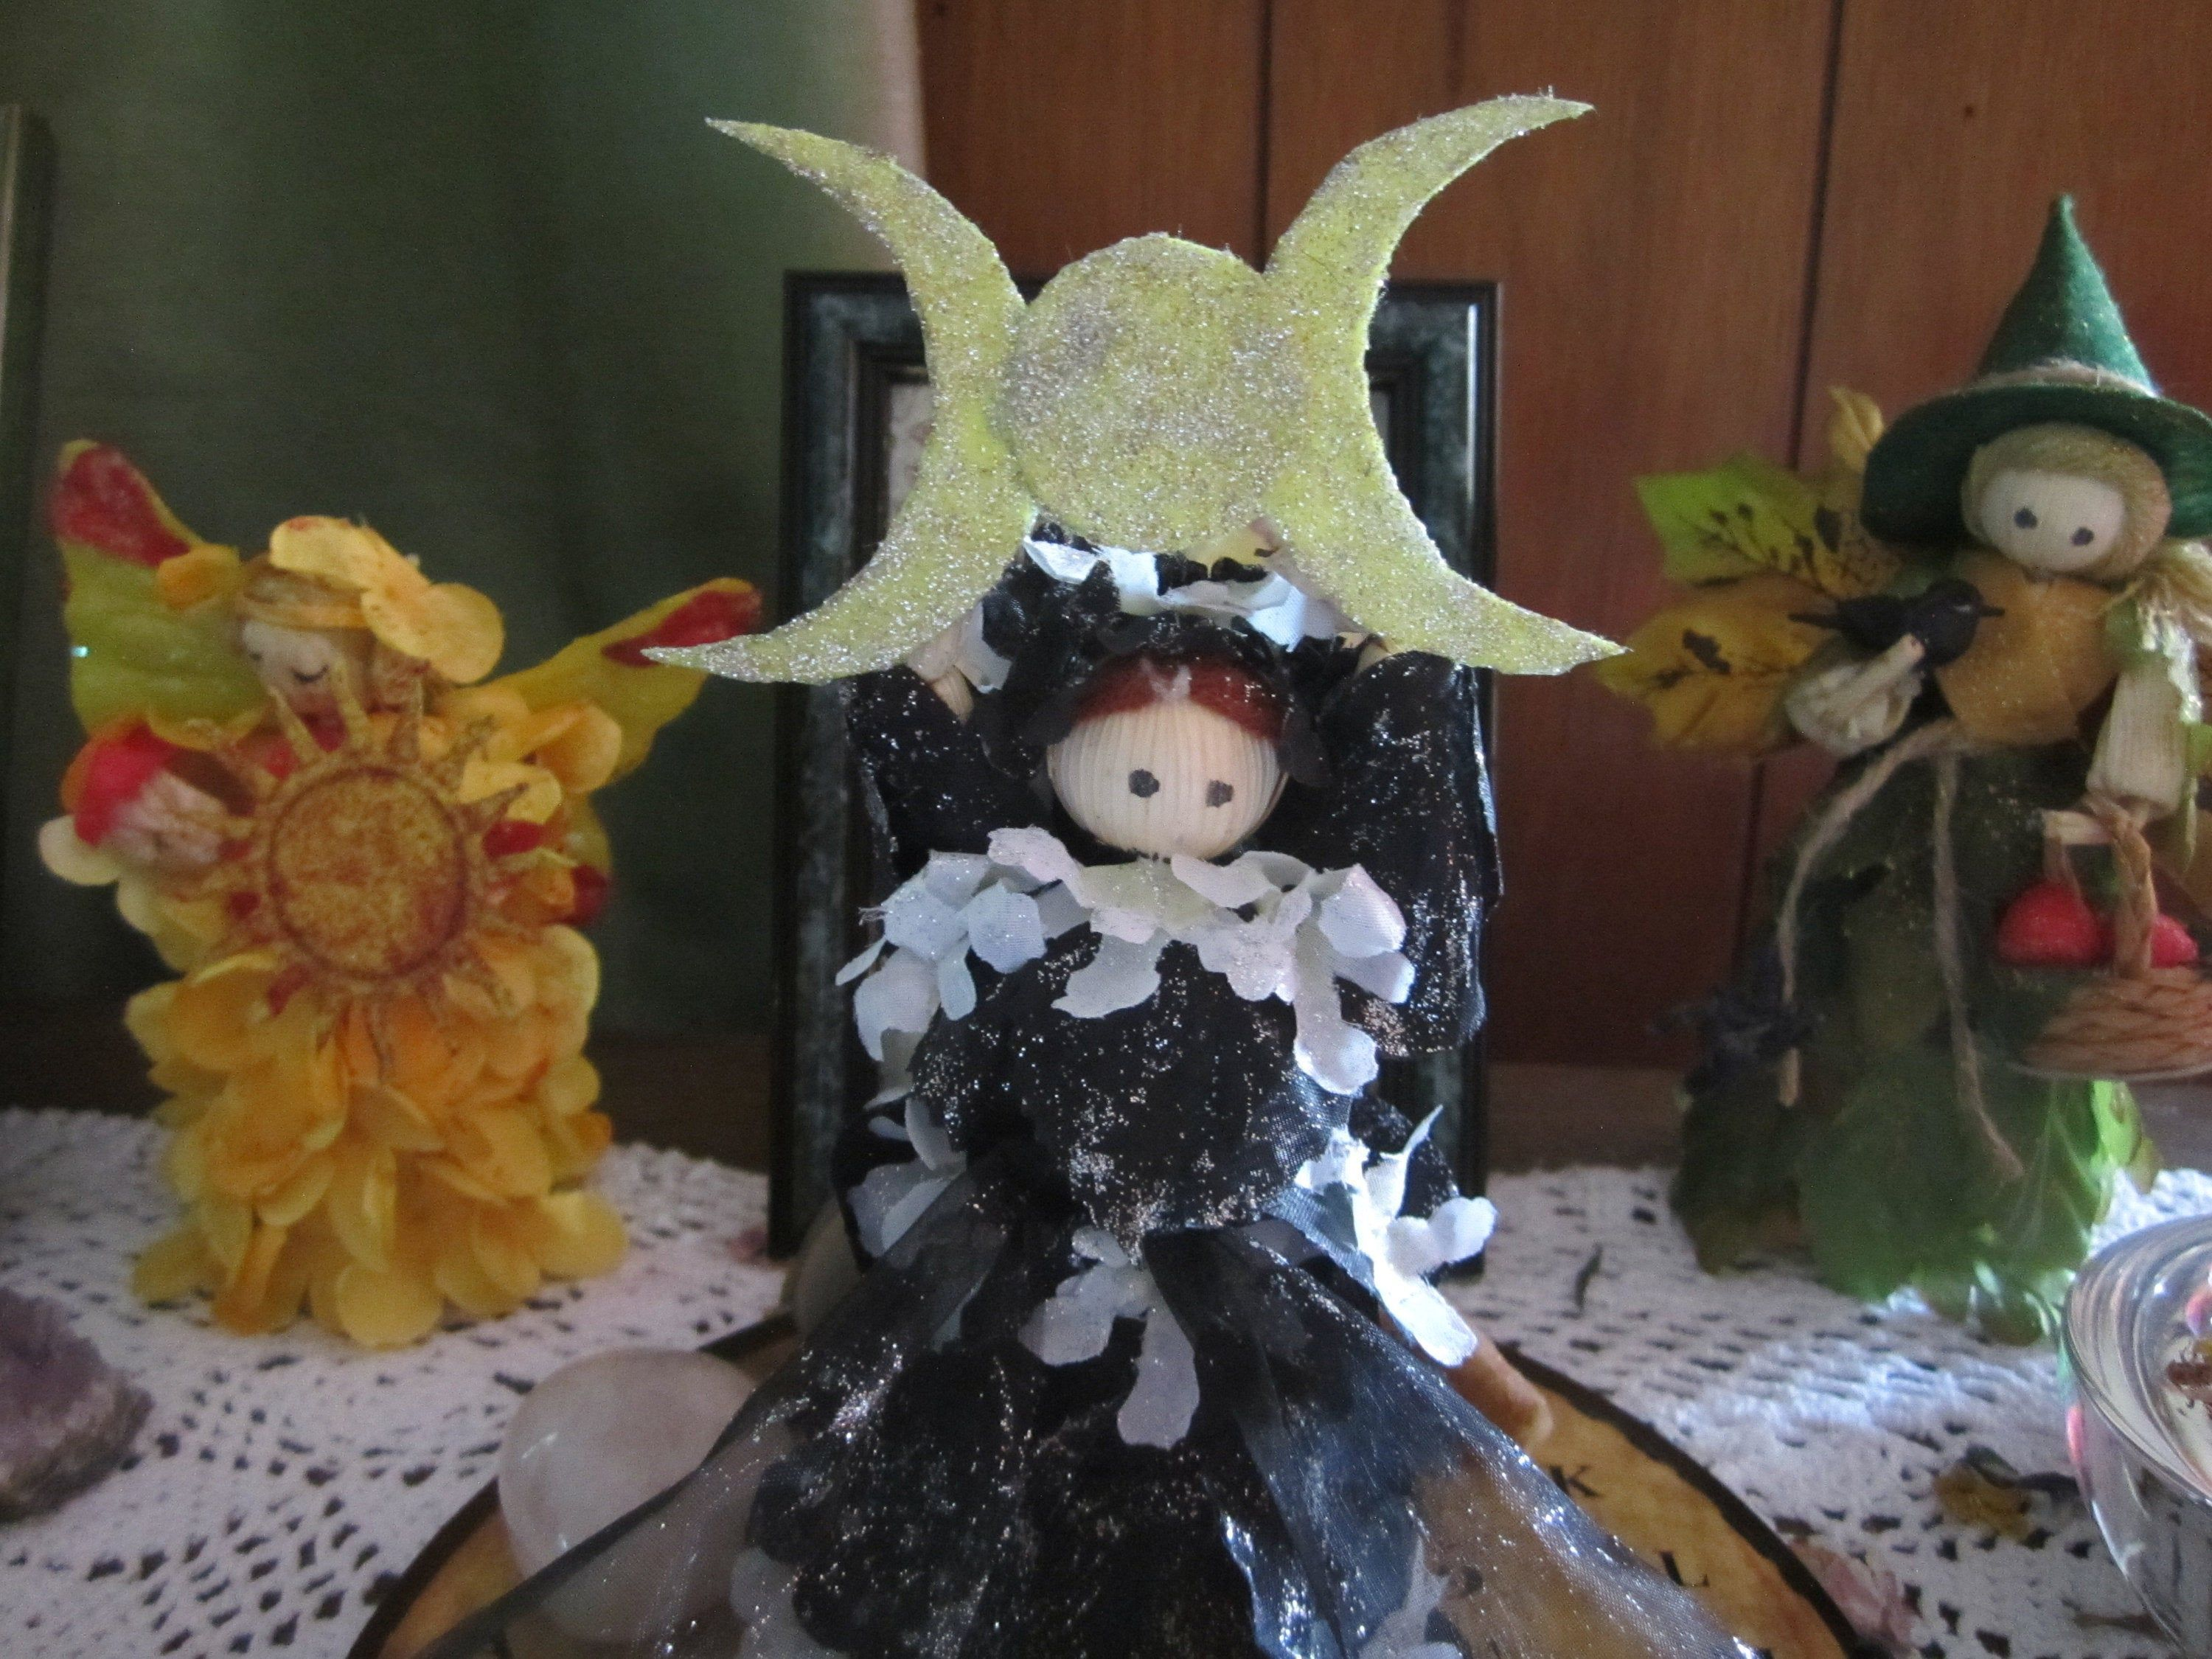 Triple Moon Goddess Corn Doll, Altar Goddess with Triple Moon, Altar Decor, Wiccan Decor, Pagan Gift, Collectable Corn Doll Goddess #wiccandecor Triple Moon Goddess Corn Doll, Altar Goddess with Triple Moon, Altar Decor, Wiccan Decor, Pagan Gift, Collectable Corn Doll Goddess #wiccandecor Triple Moon Goddess Corn Doll, Altar Goddess with Triple Moon, Altar Decor, Wiccan Decor, Pagan Gift, Collectable Corn Doll Goddess #wiccandecor Triple Moon Goddess Corn Doll, Altar Goddess with Triple Moon, Al #wiccandecor